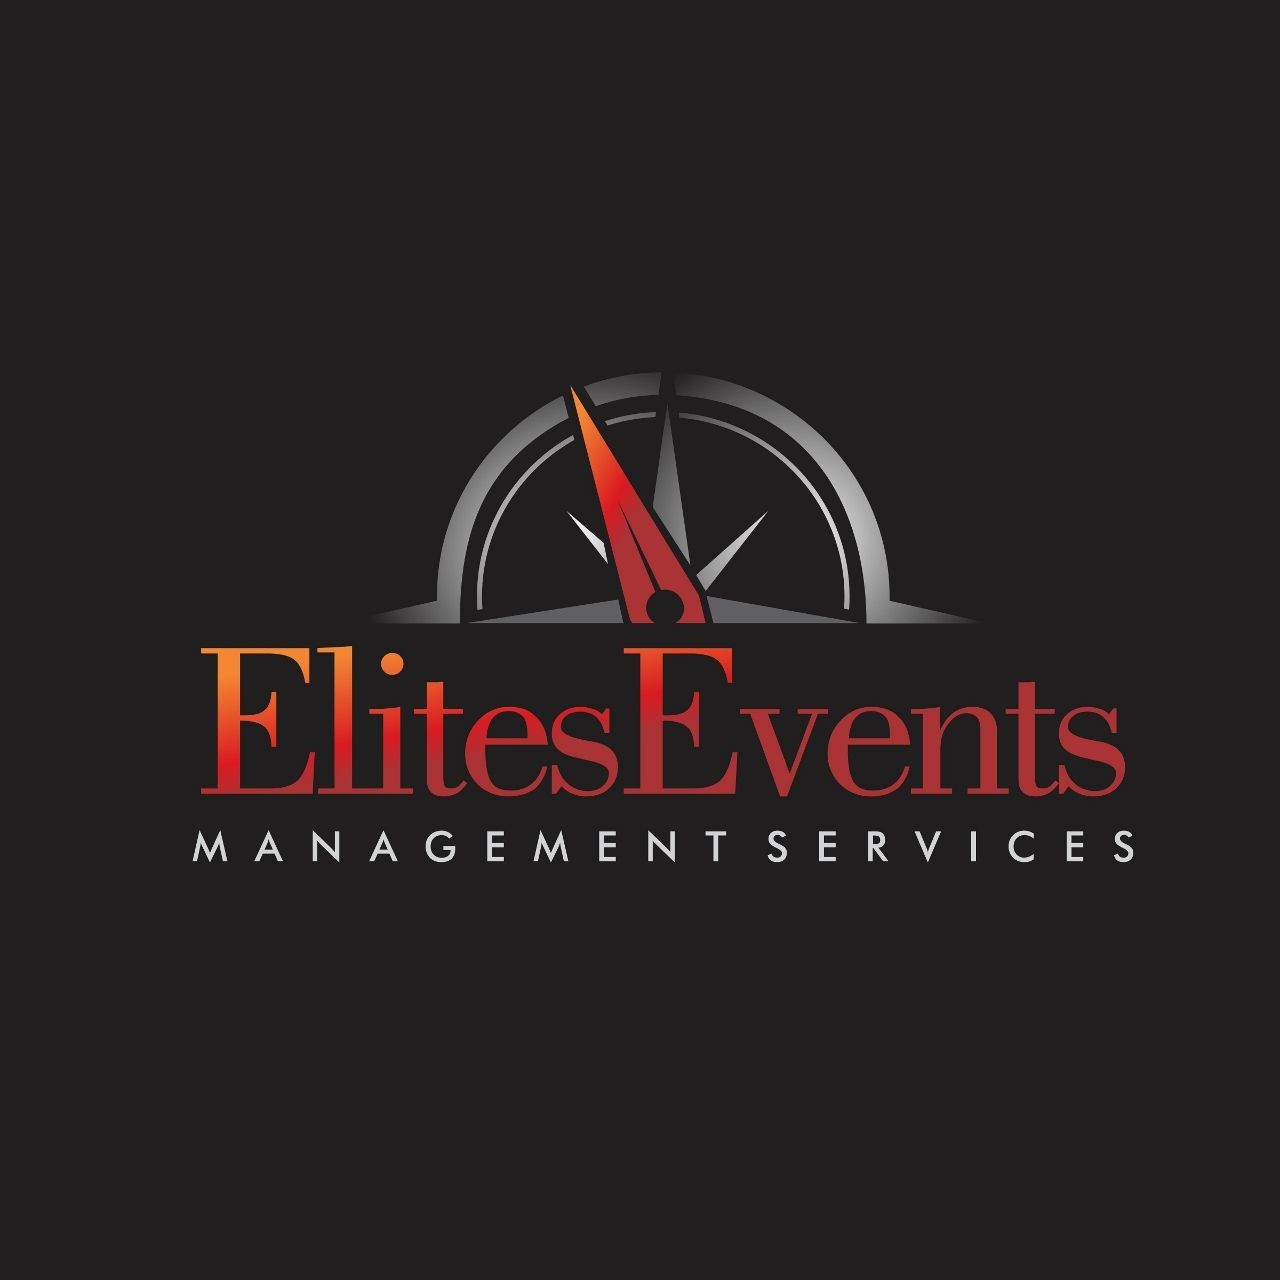 Elites Events Management Services